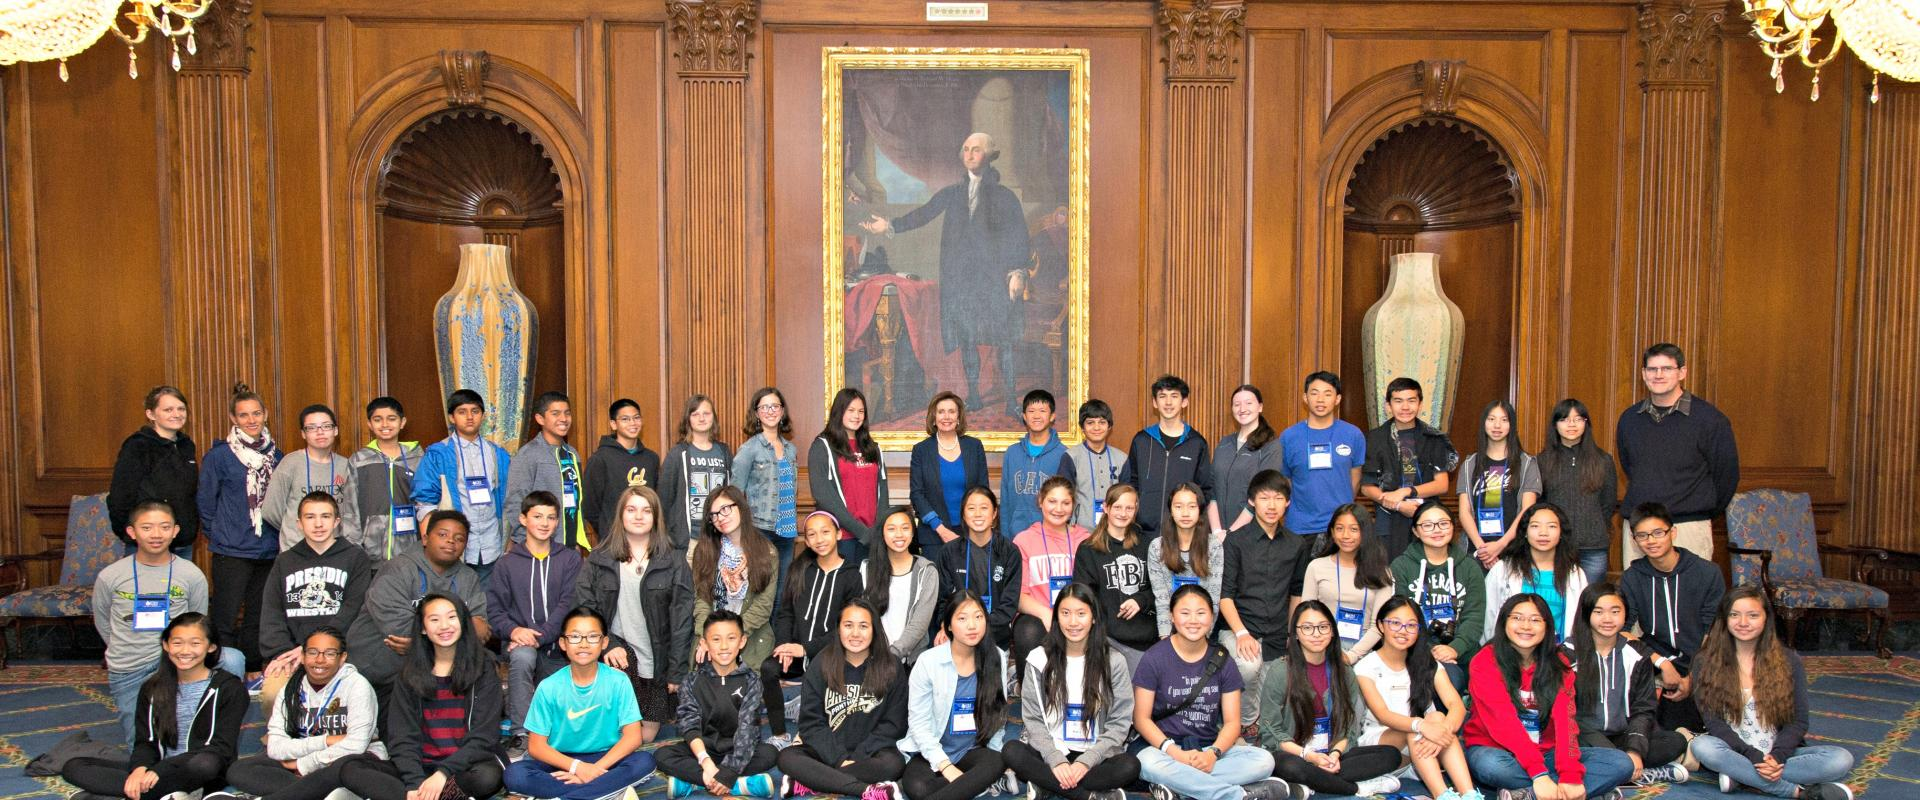 Congresswoman Nancy Pelosi meets with 8th grade students from Presidio Middle School in San Francisco, discussing climate change, education policy and Steph Curry.